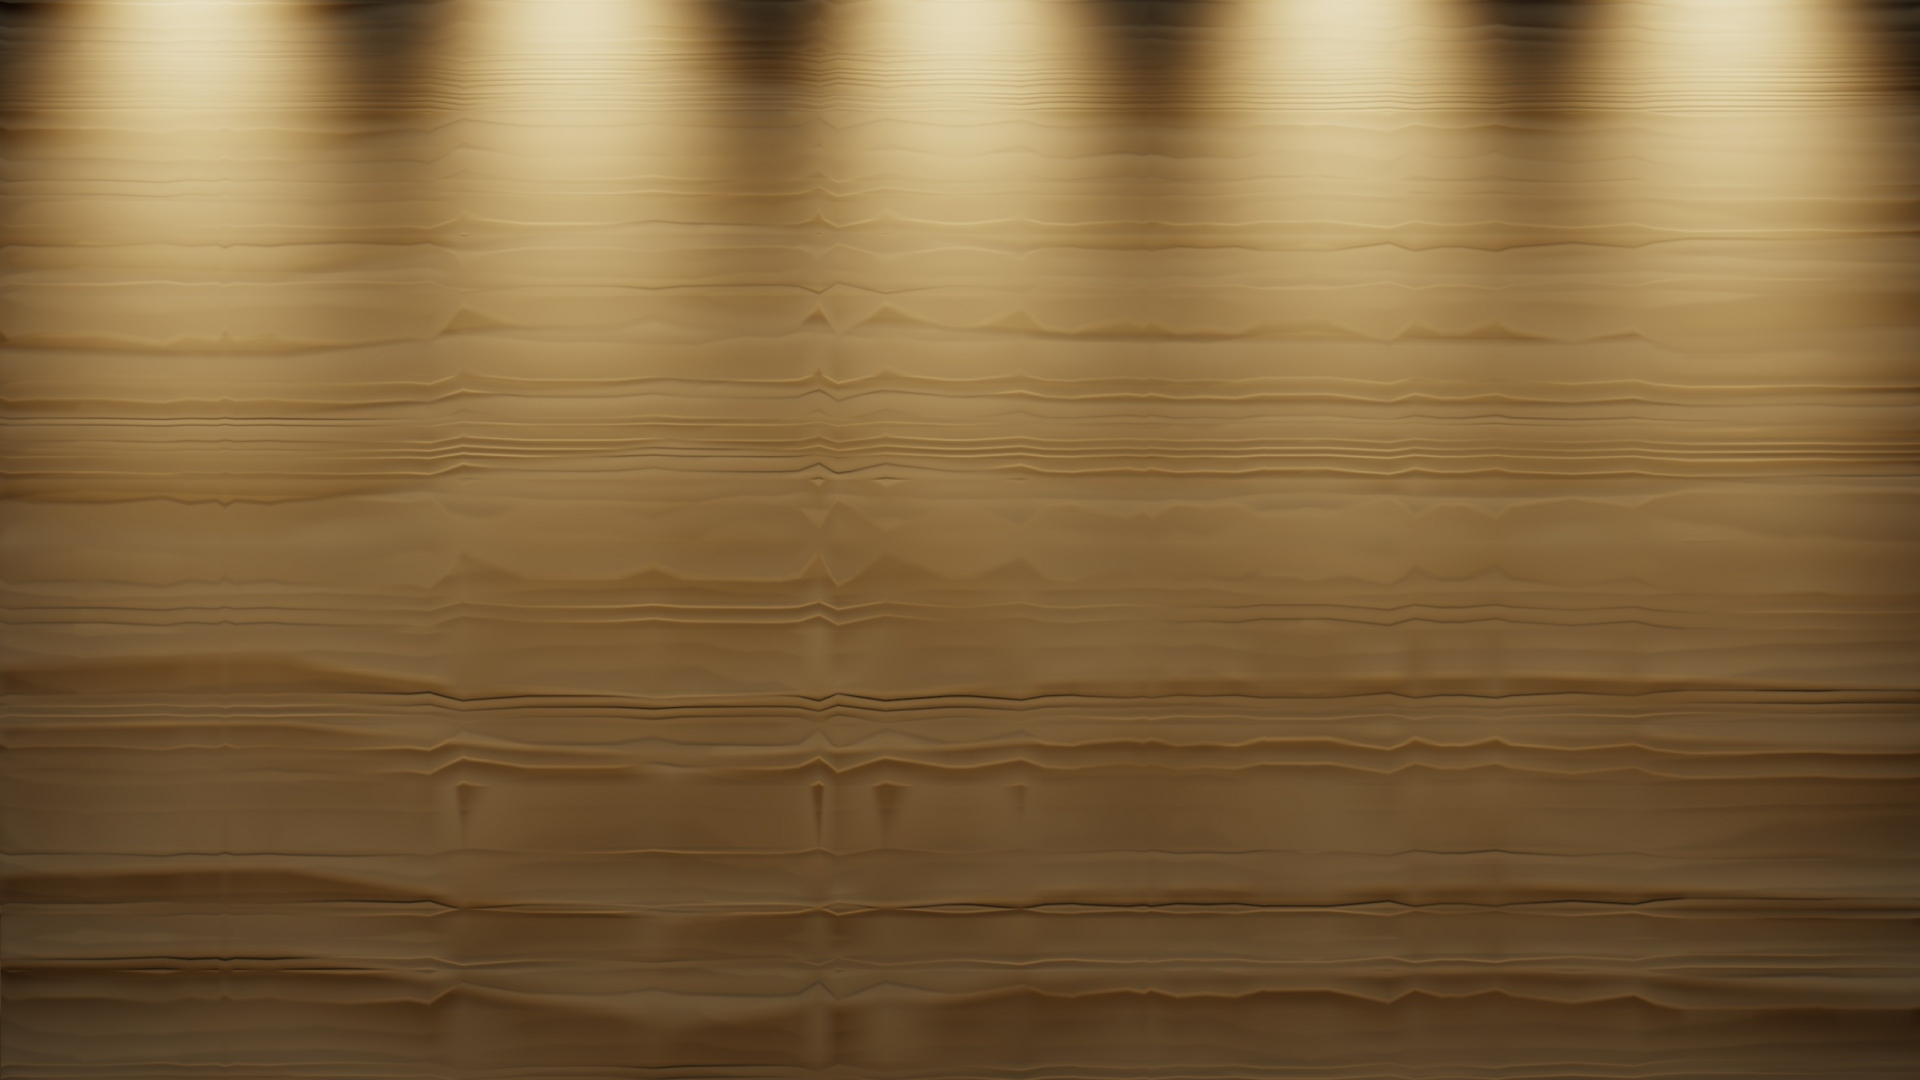 Wood Wallpaper 1080p Wallpapersafari